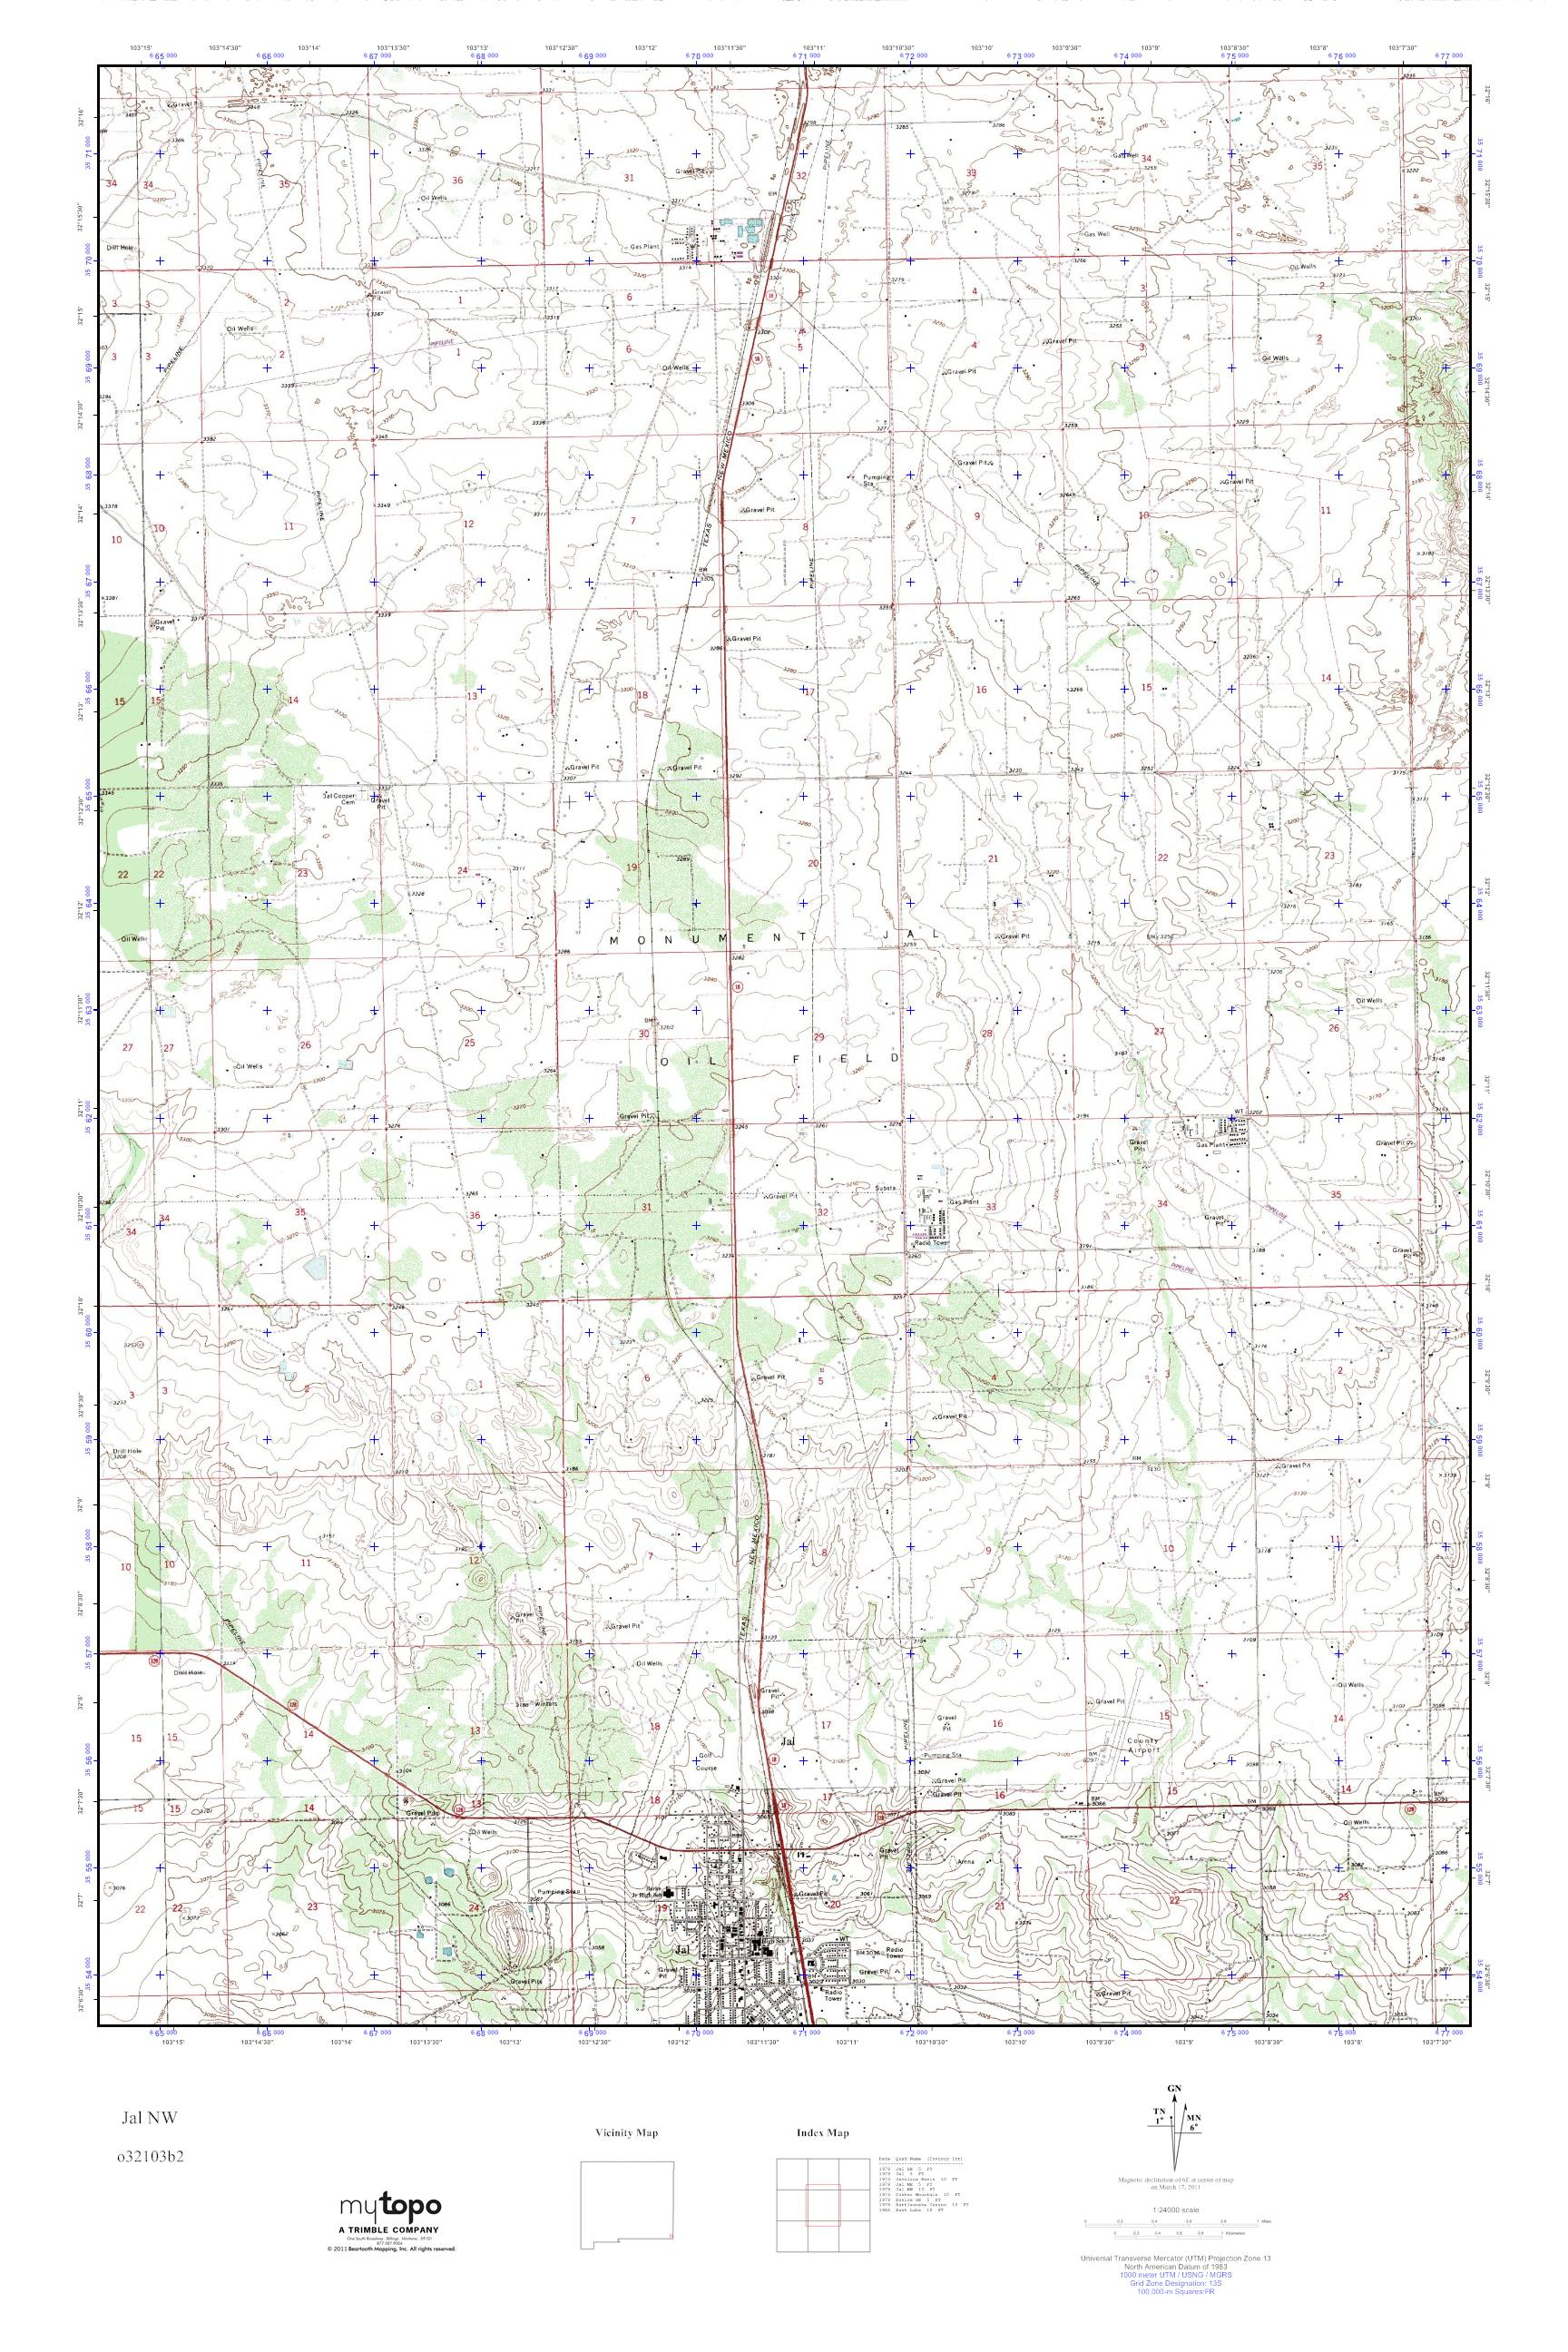 Jal New Mexico Map.Mytopo Jal Nw New Mexico Usgs Quad Topo Map